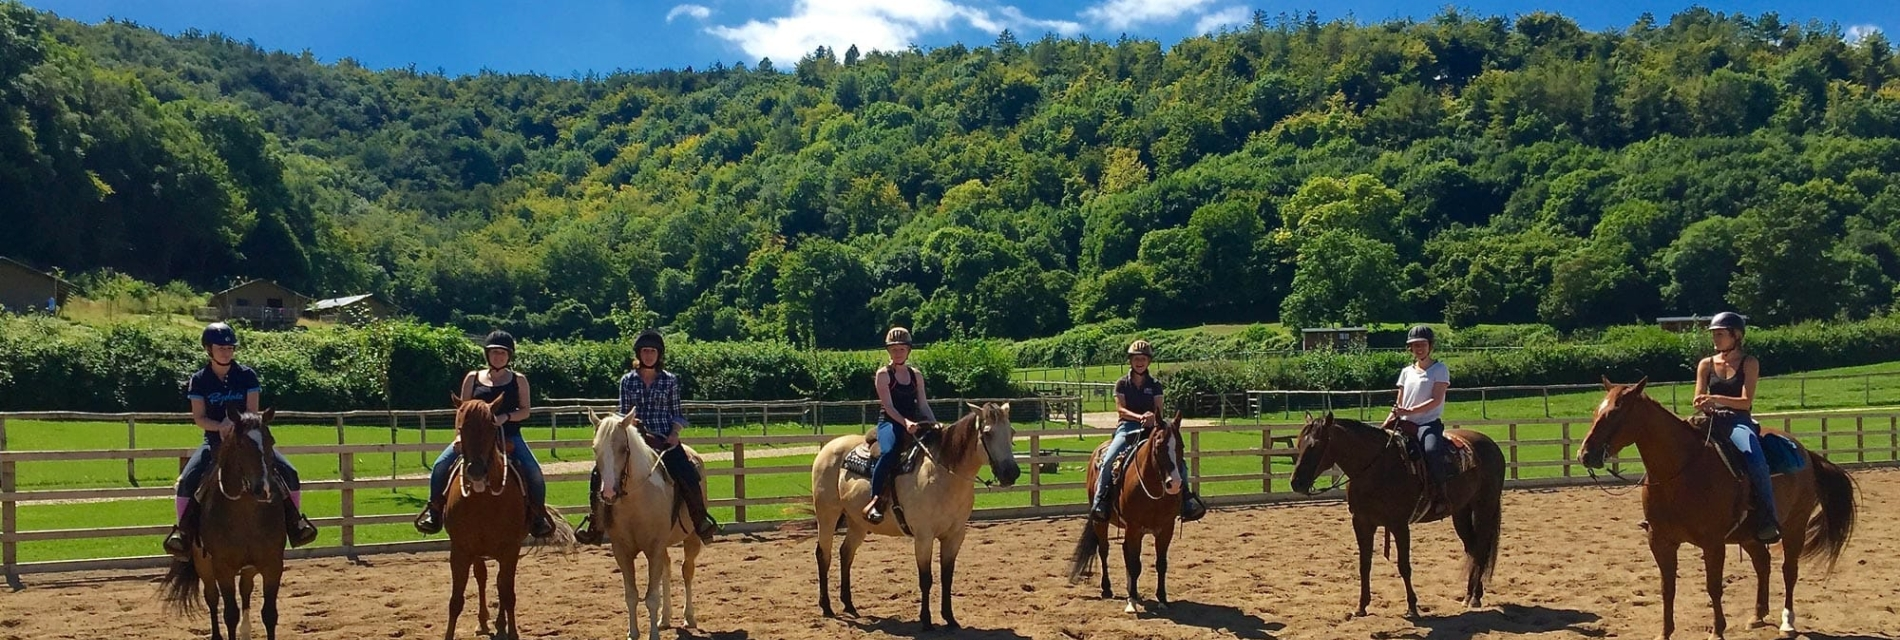 Horseback riding in Dorset